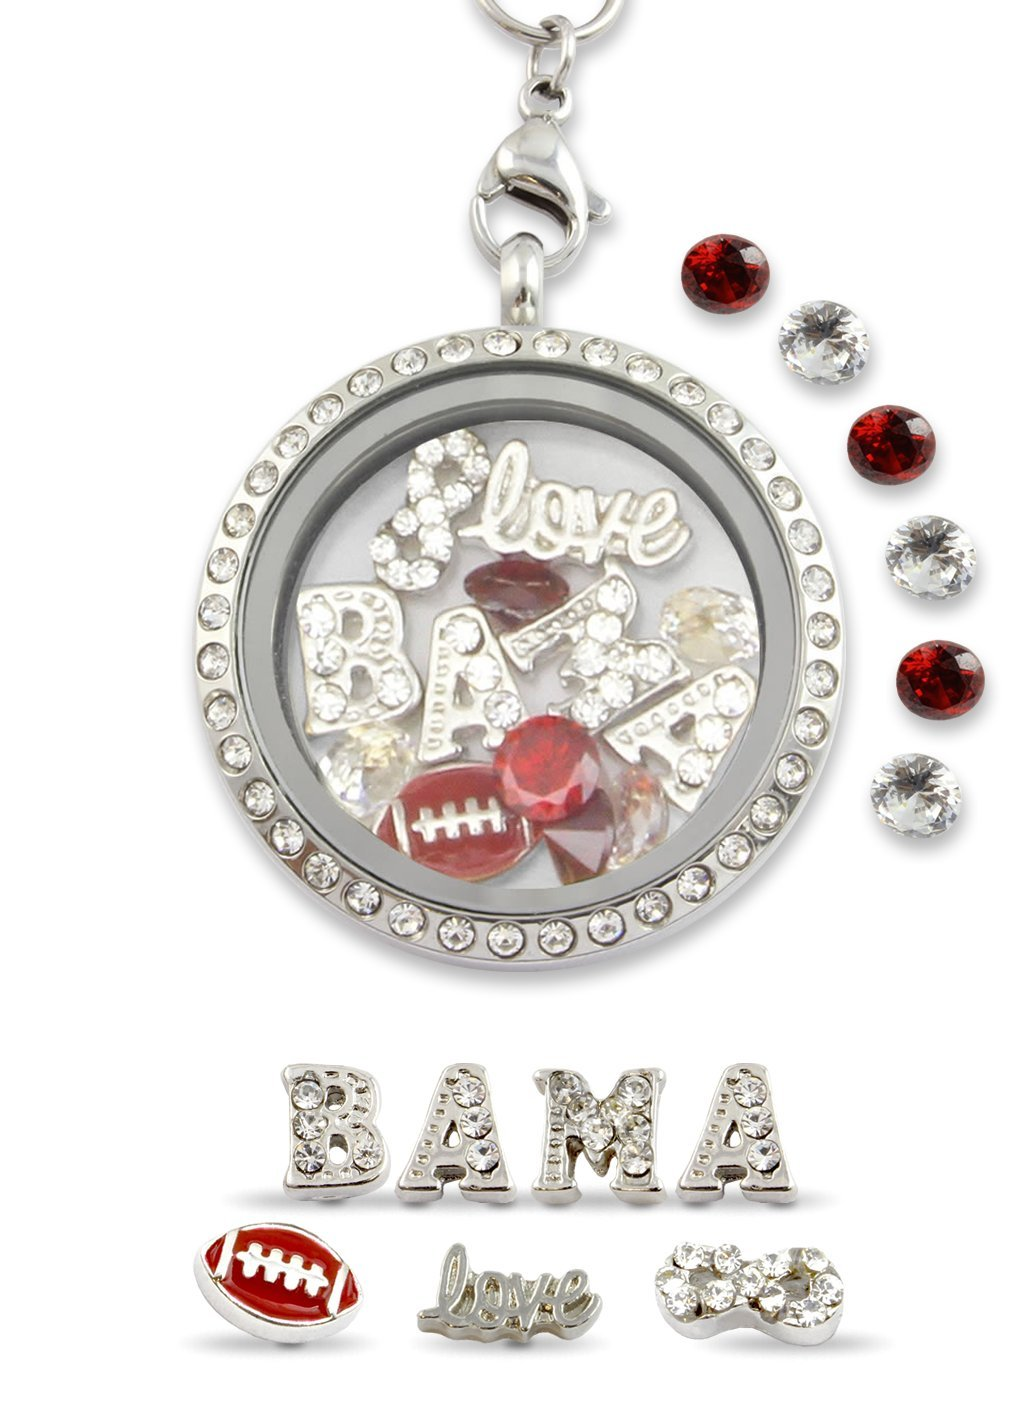 Infinity Love Alabama College Football Floating Charm Living Memory Locket Magnetic Closure 30mm Stainless Steel Pendant Necklace